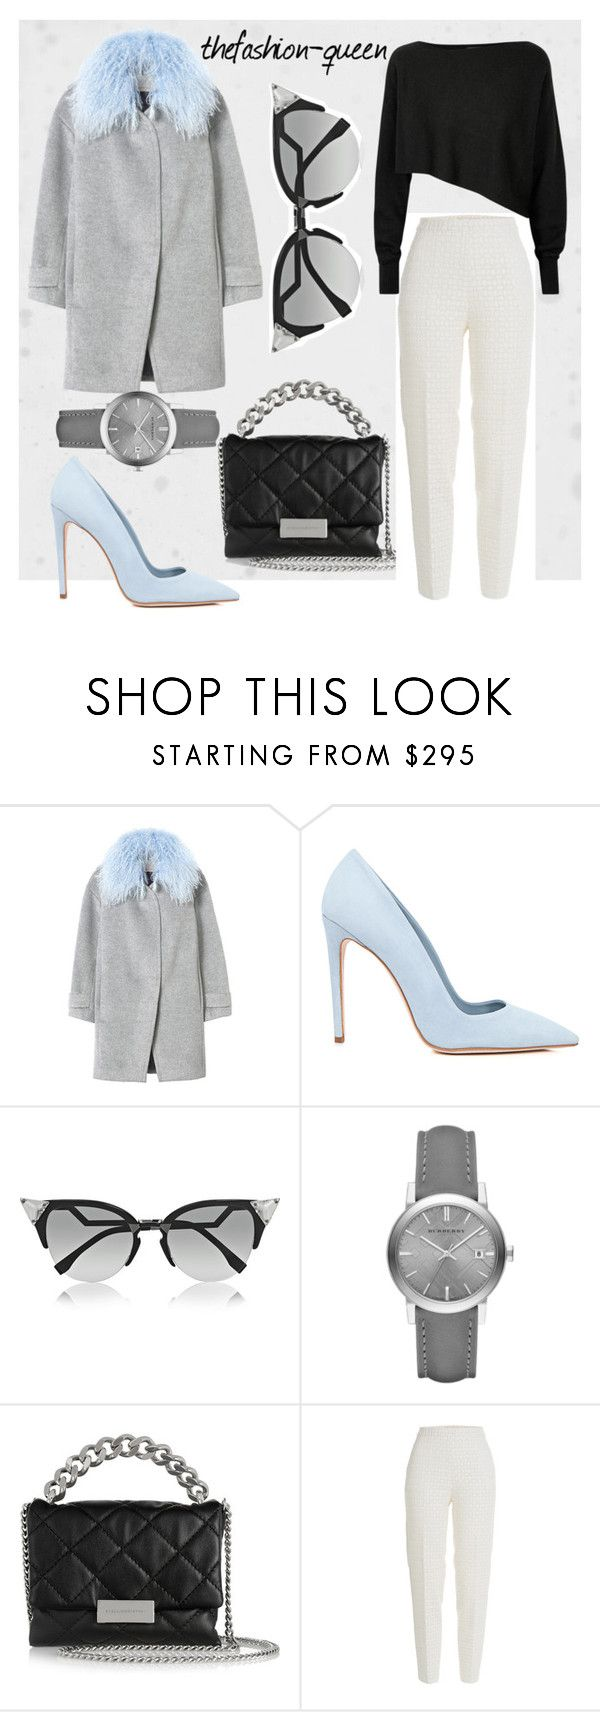 """""""Untitled #32"""" by thefashion-queen ❤ liked on Polyvore featuring Rebecca Taylor, Dee Keller, Fendi, Burberry, STELLA McCARTNEY, Giambattista Valli and Crea Concept"""